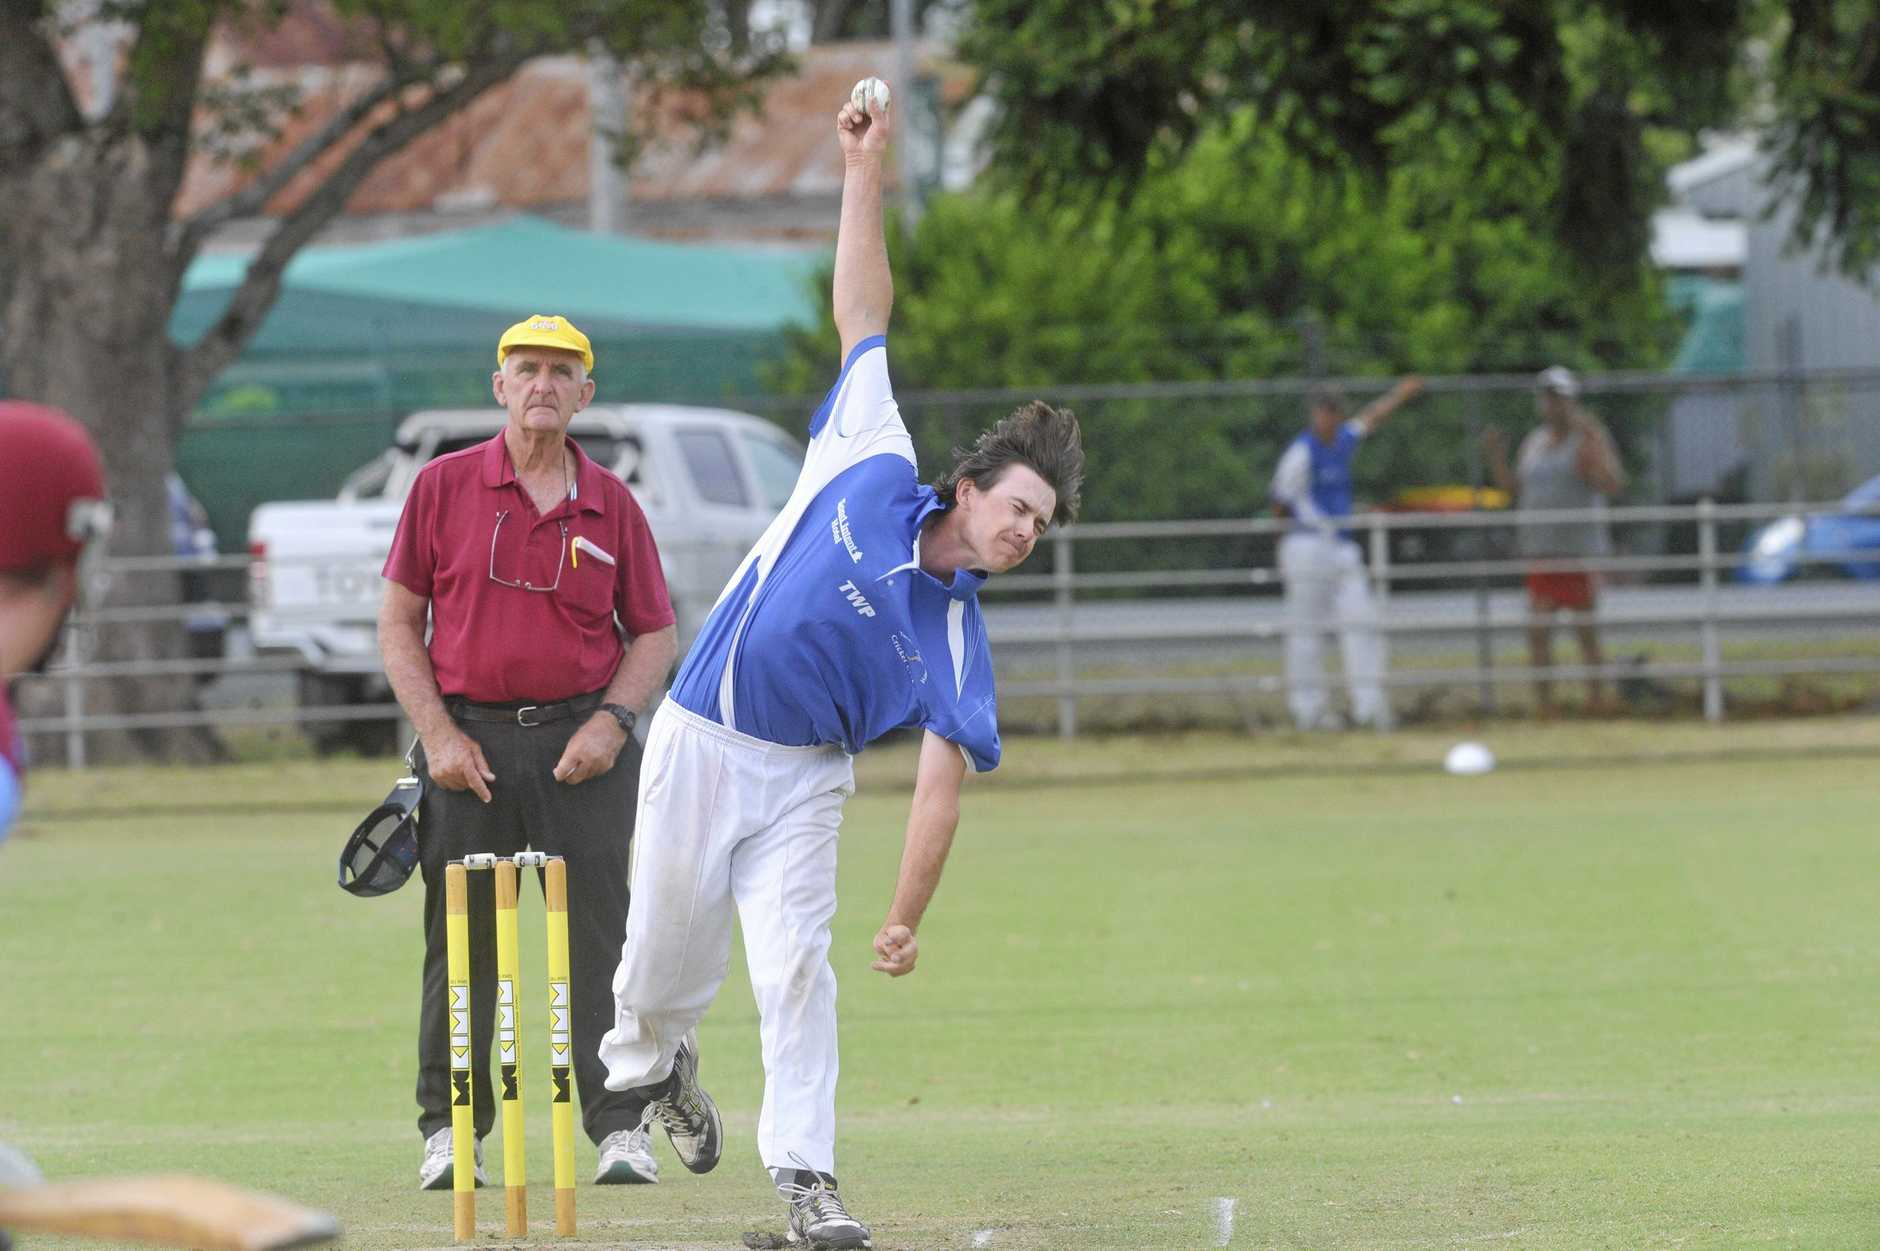 Tyson Blackadder gets his arm high in the delivery during the Cleavers Mechanical Night Cricket clash between Brothers and Tucabia Copmanhurst at McKittrick Park.